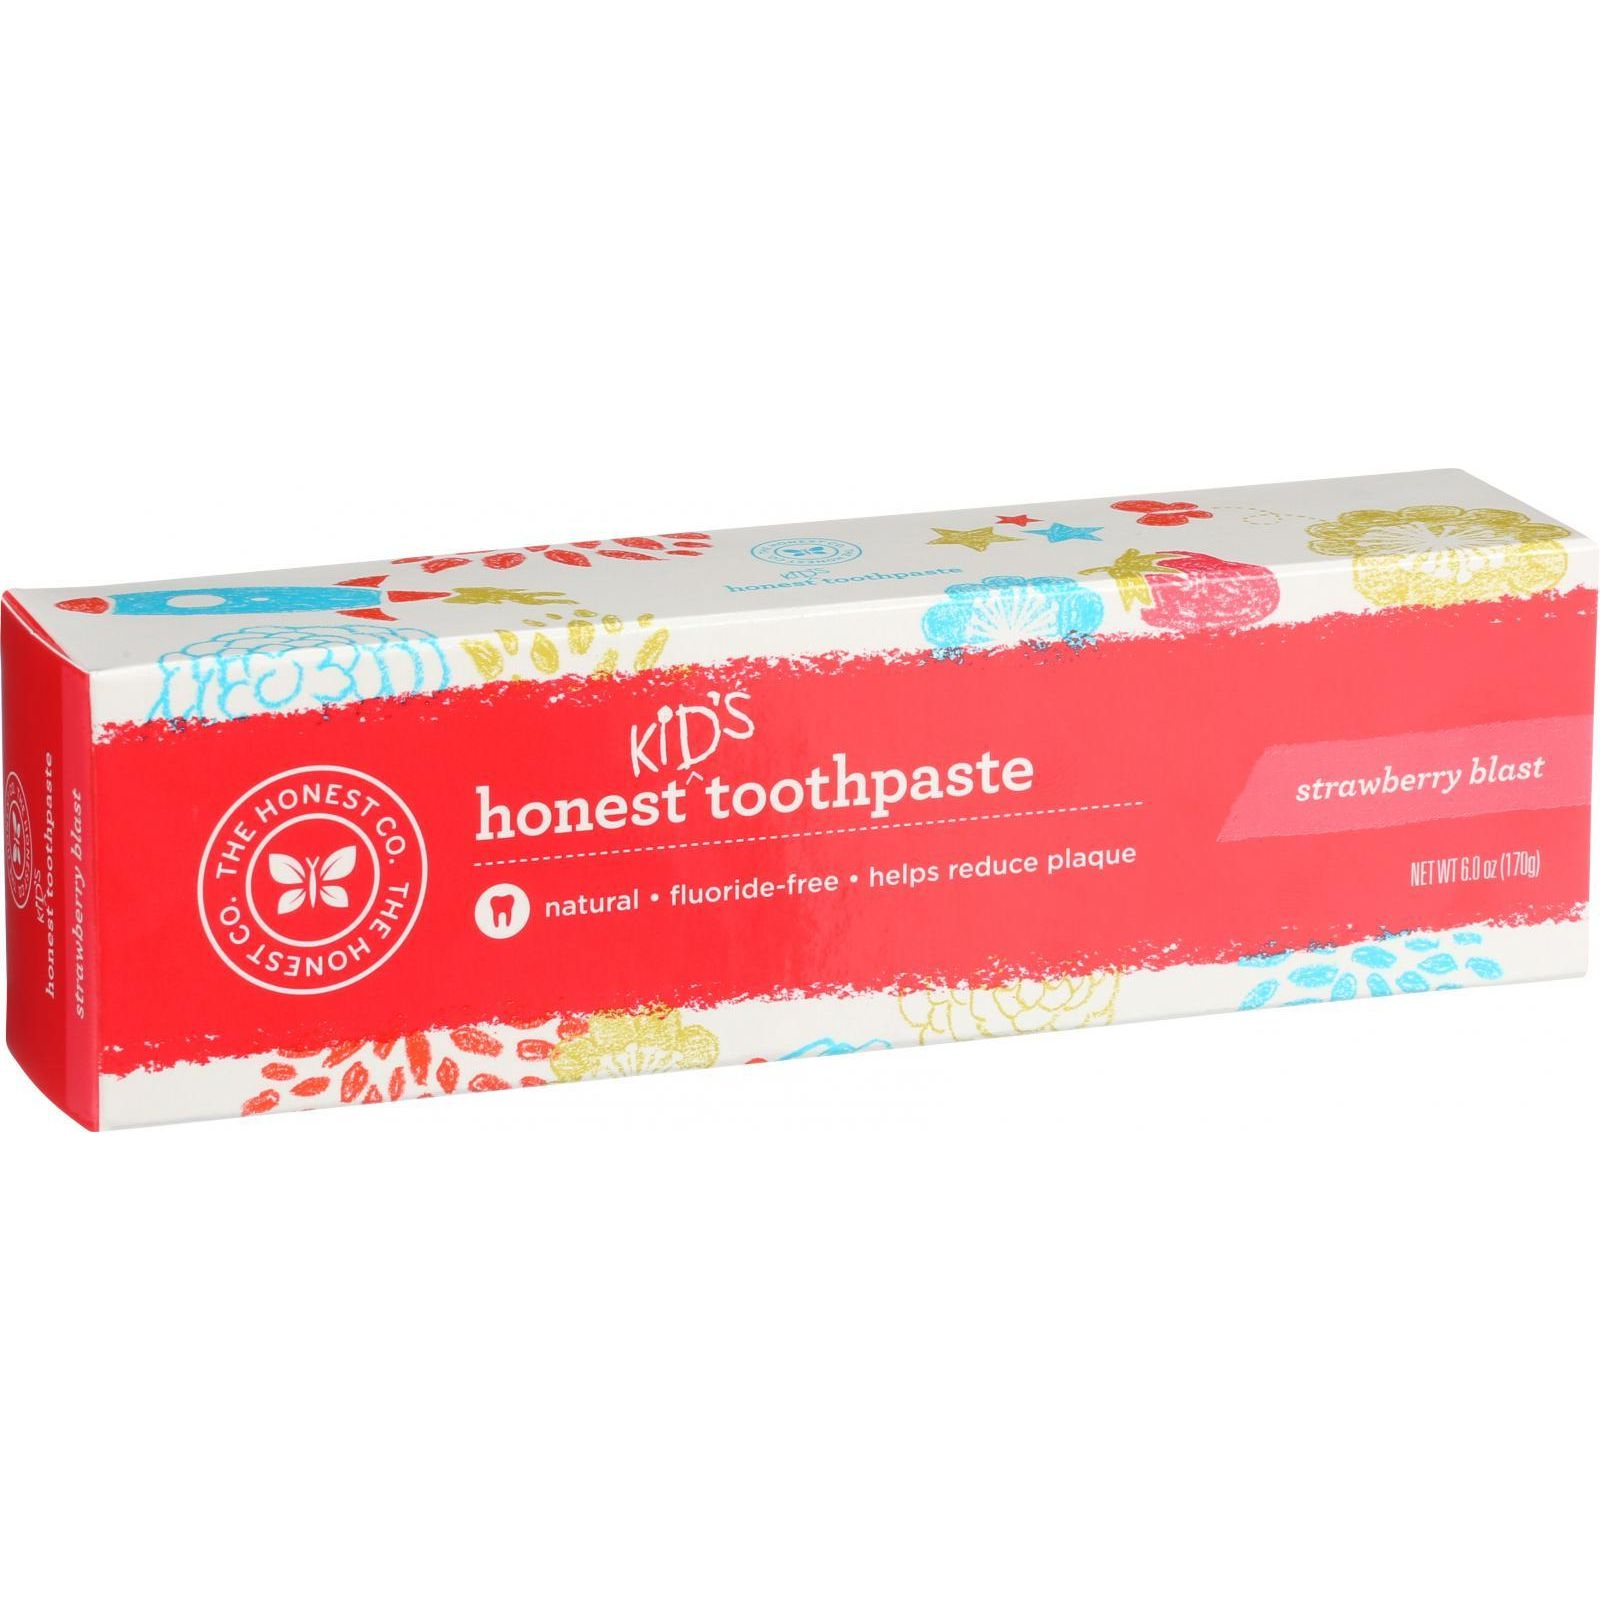 The Honest Company Honest Toothpaste - Kids - Strawberry Blast - 6 oz